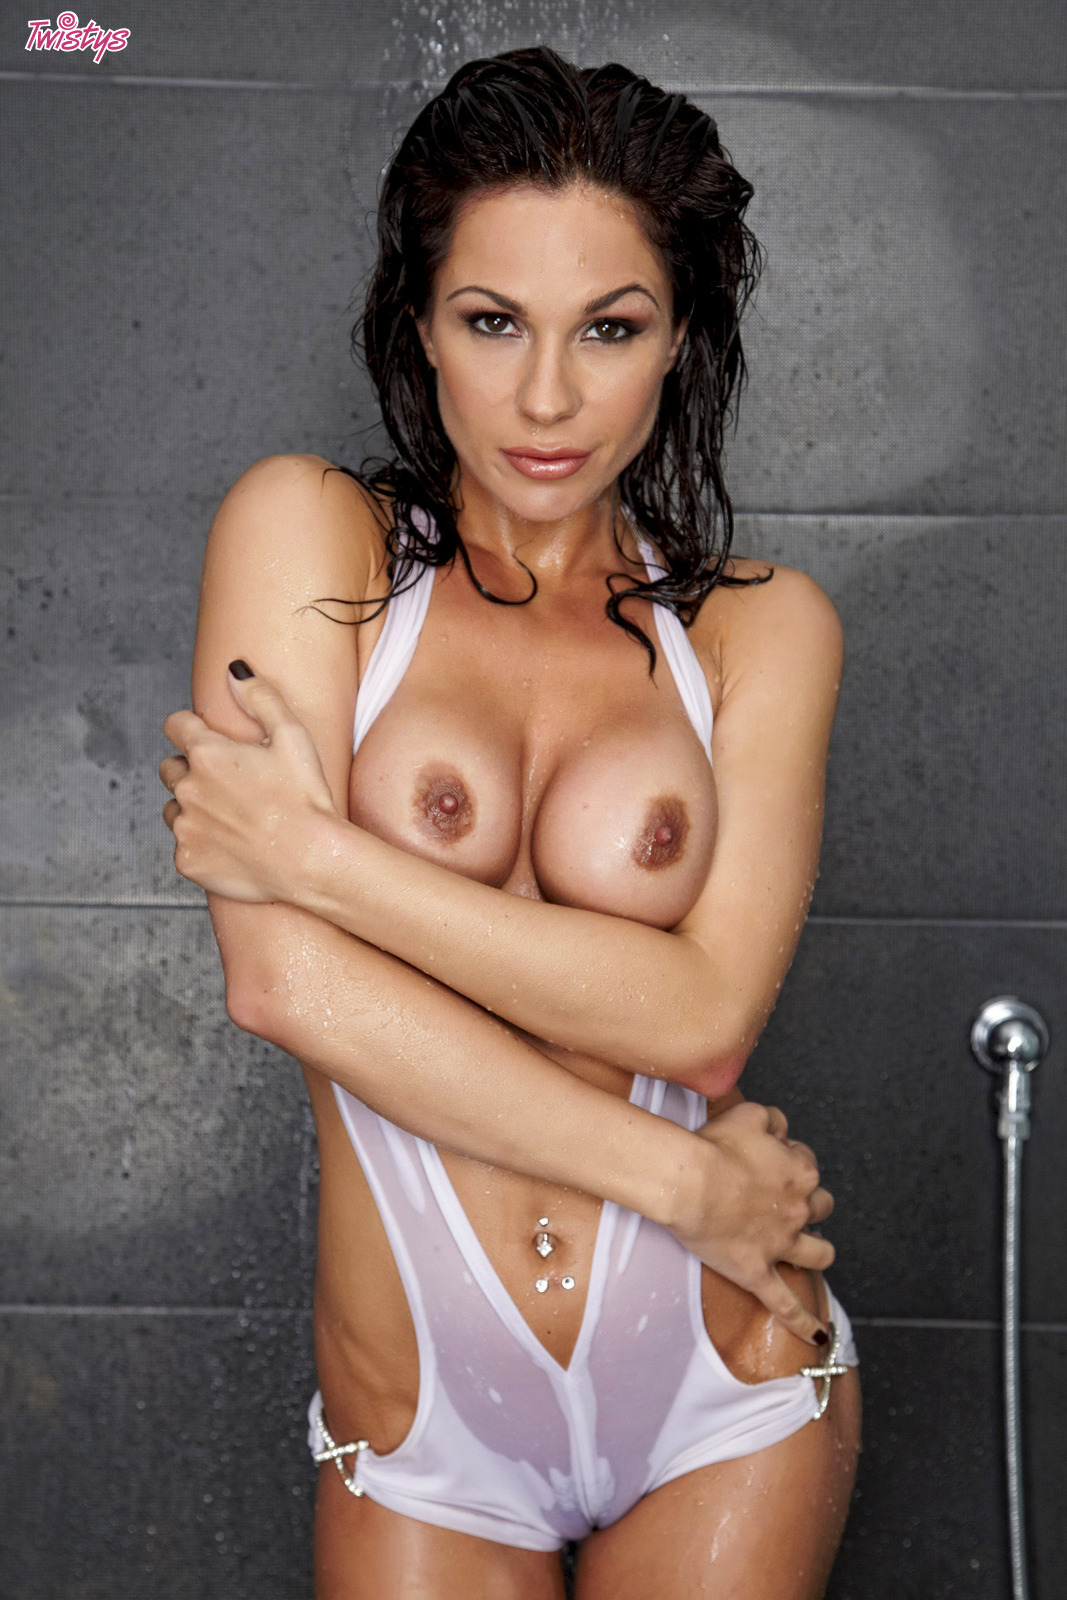 Shall afford Kirsten price nude interesting. Tell